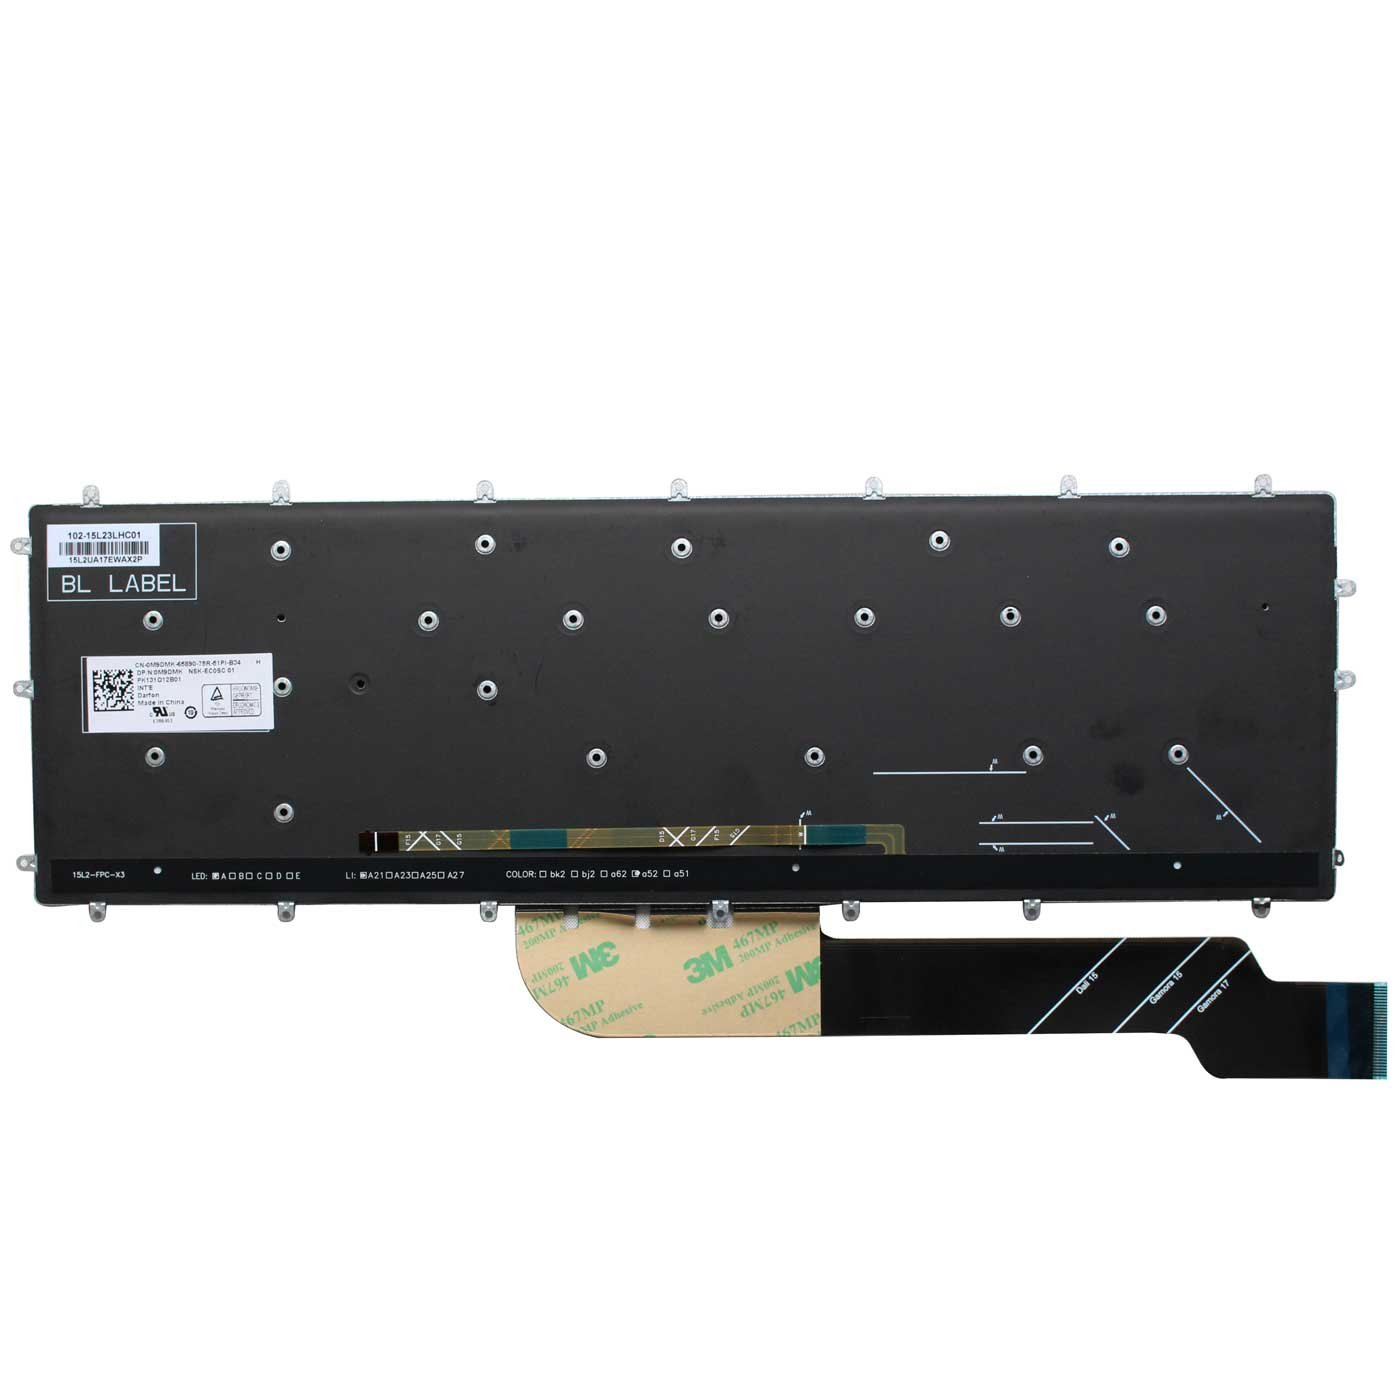 AUTENS Replacement US Layout Keyboard for Dell Inspiron 5565 5567 5570 5575 7566 7567 7577 5765 5767 5770 5775 7773 7778 7779 Laptop No Frame White Backlight 1 Year Warranty